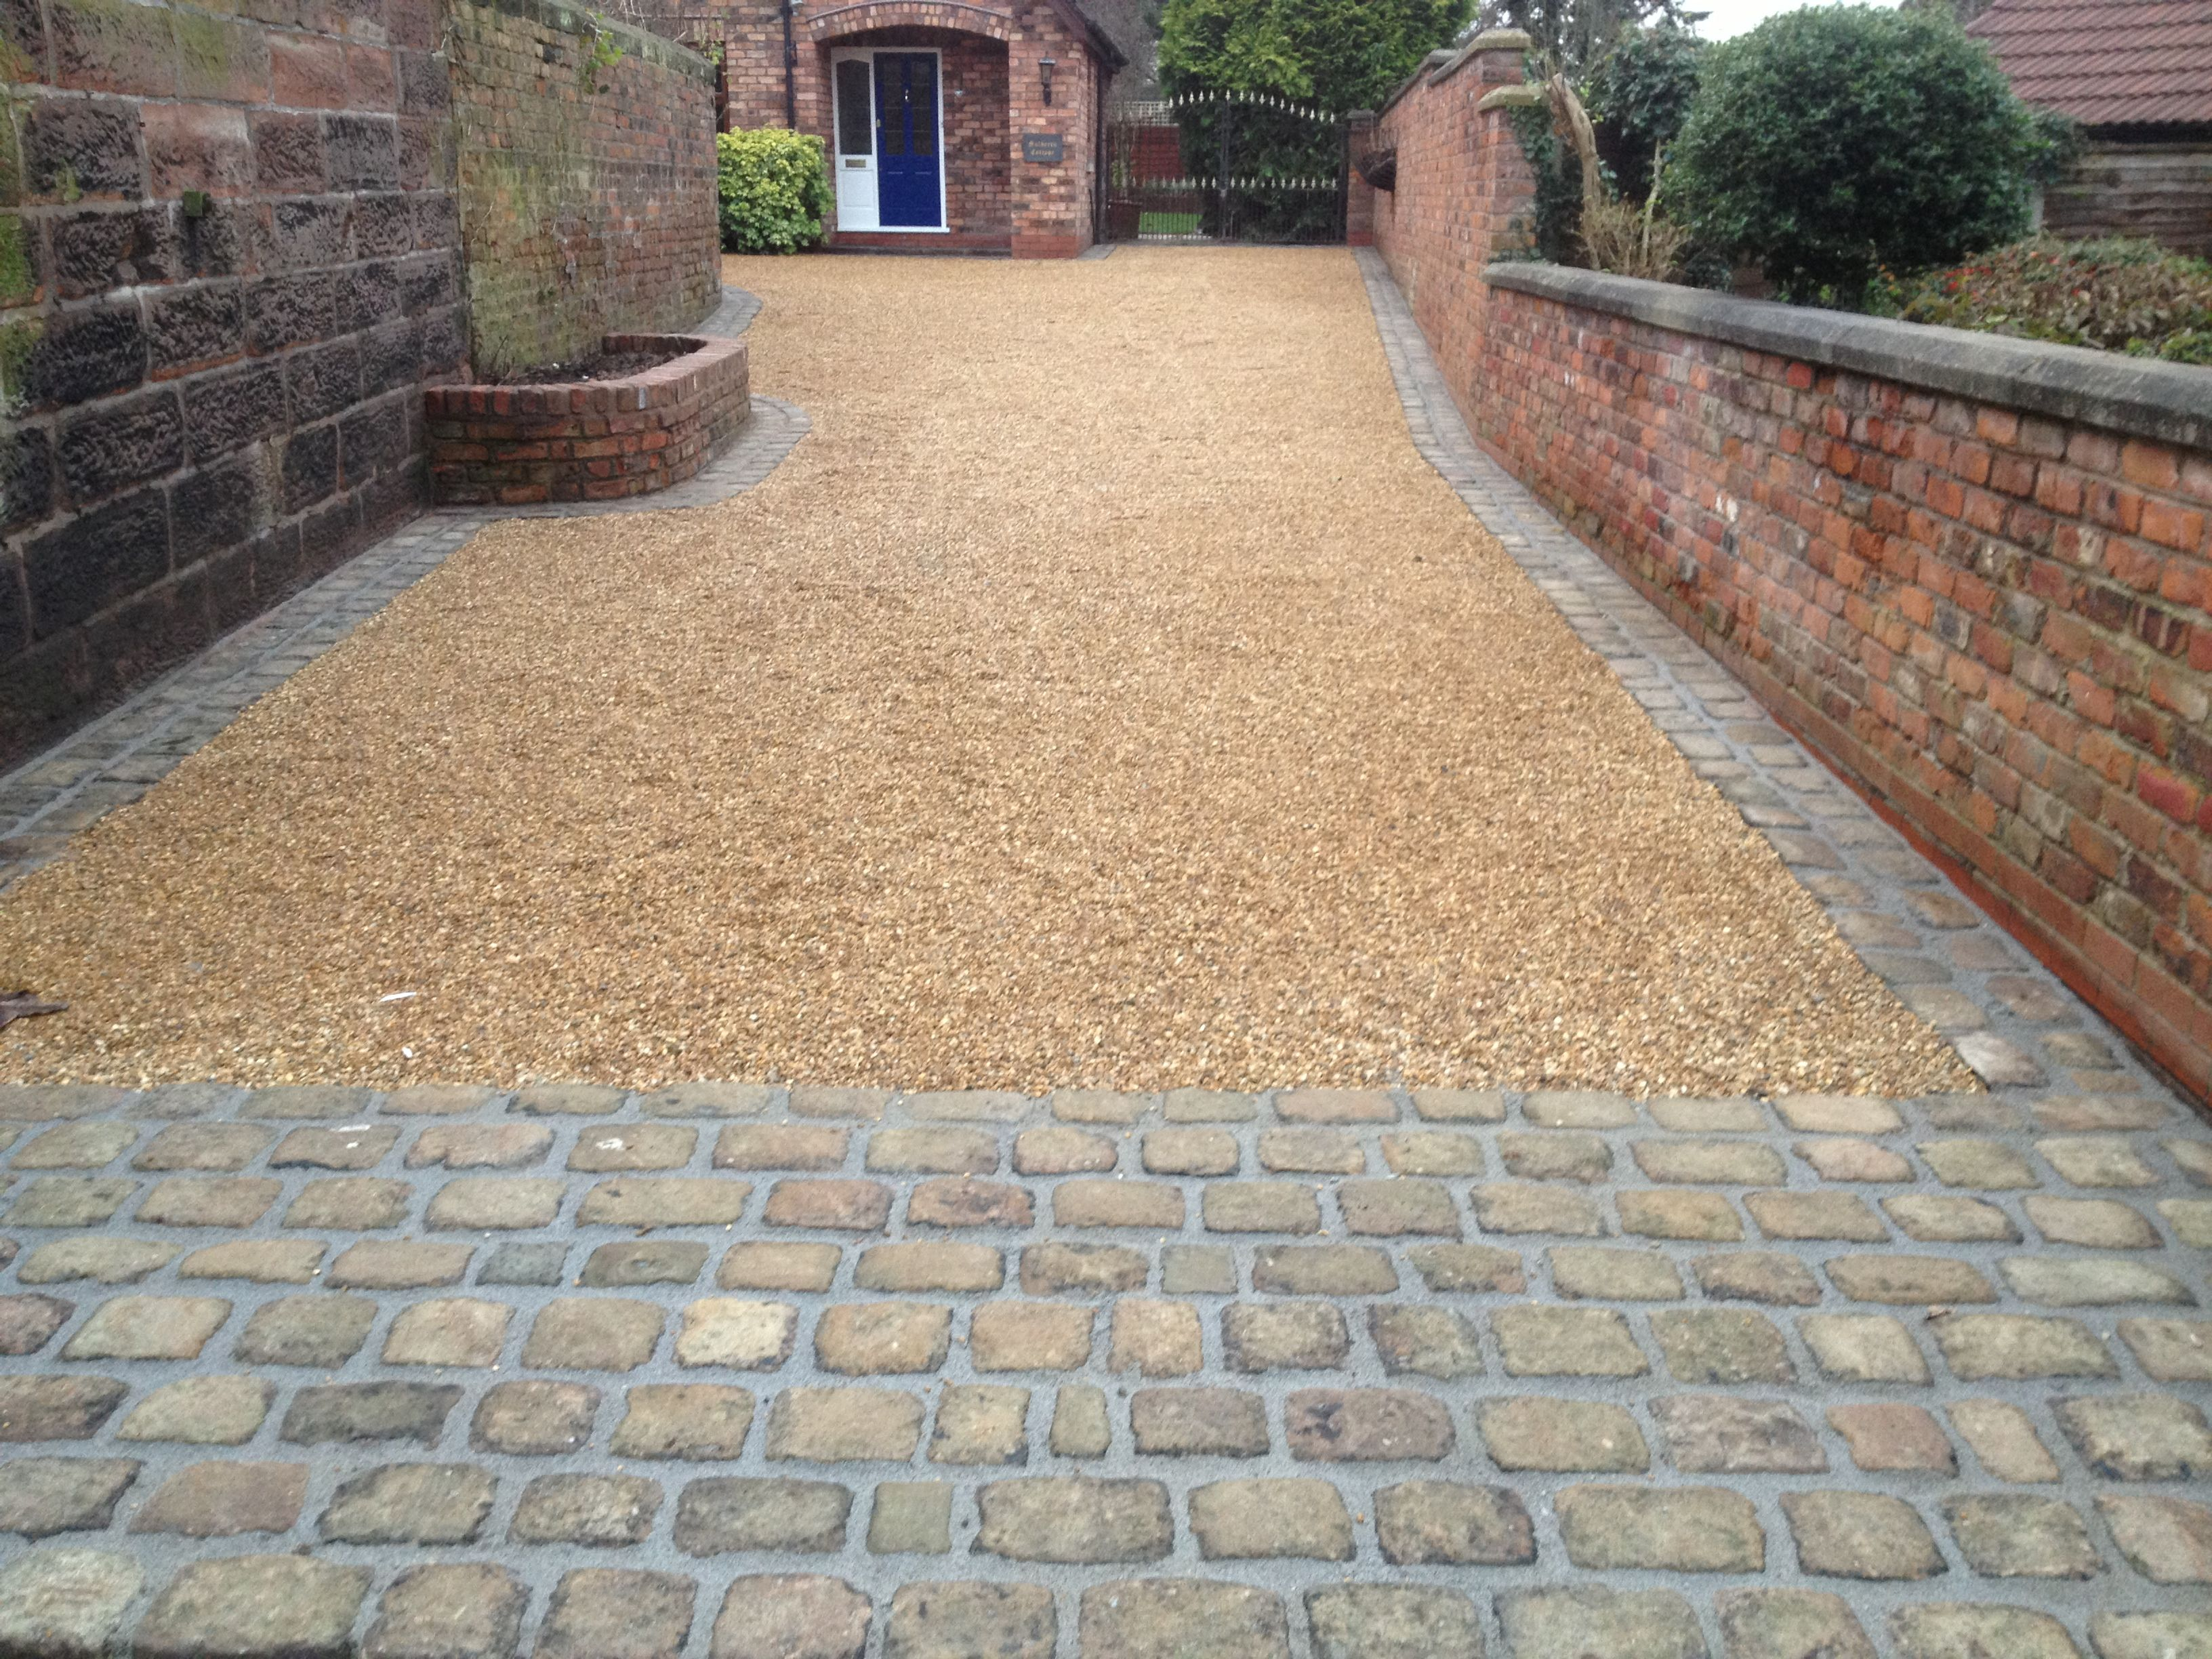 Gravel Driveway With Gravel Stabilizers To Keep Gravel In Place